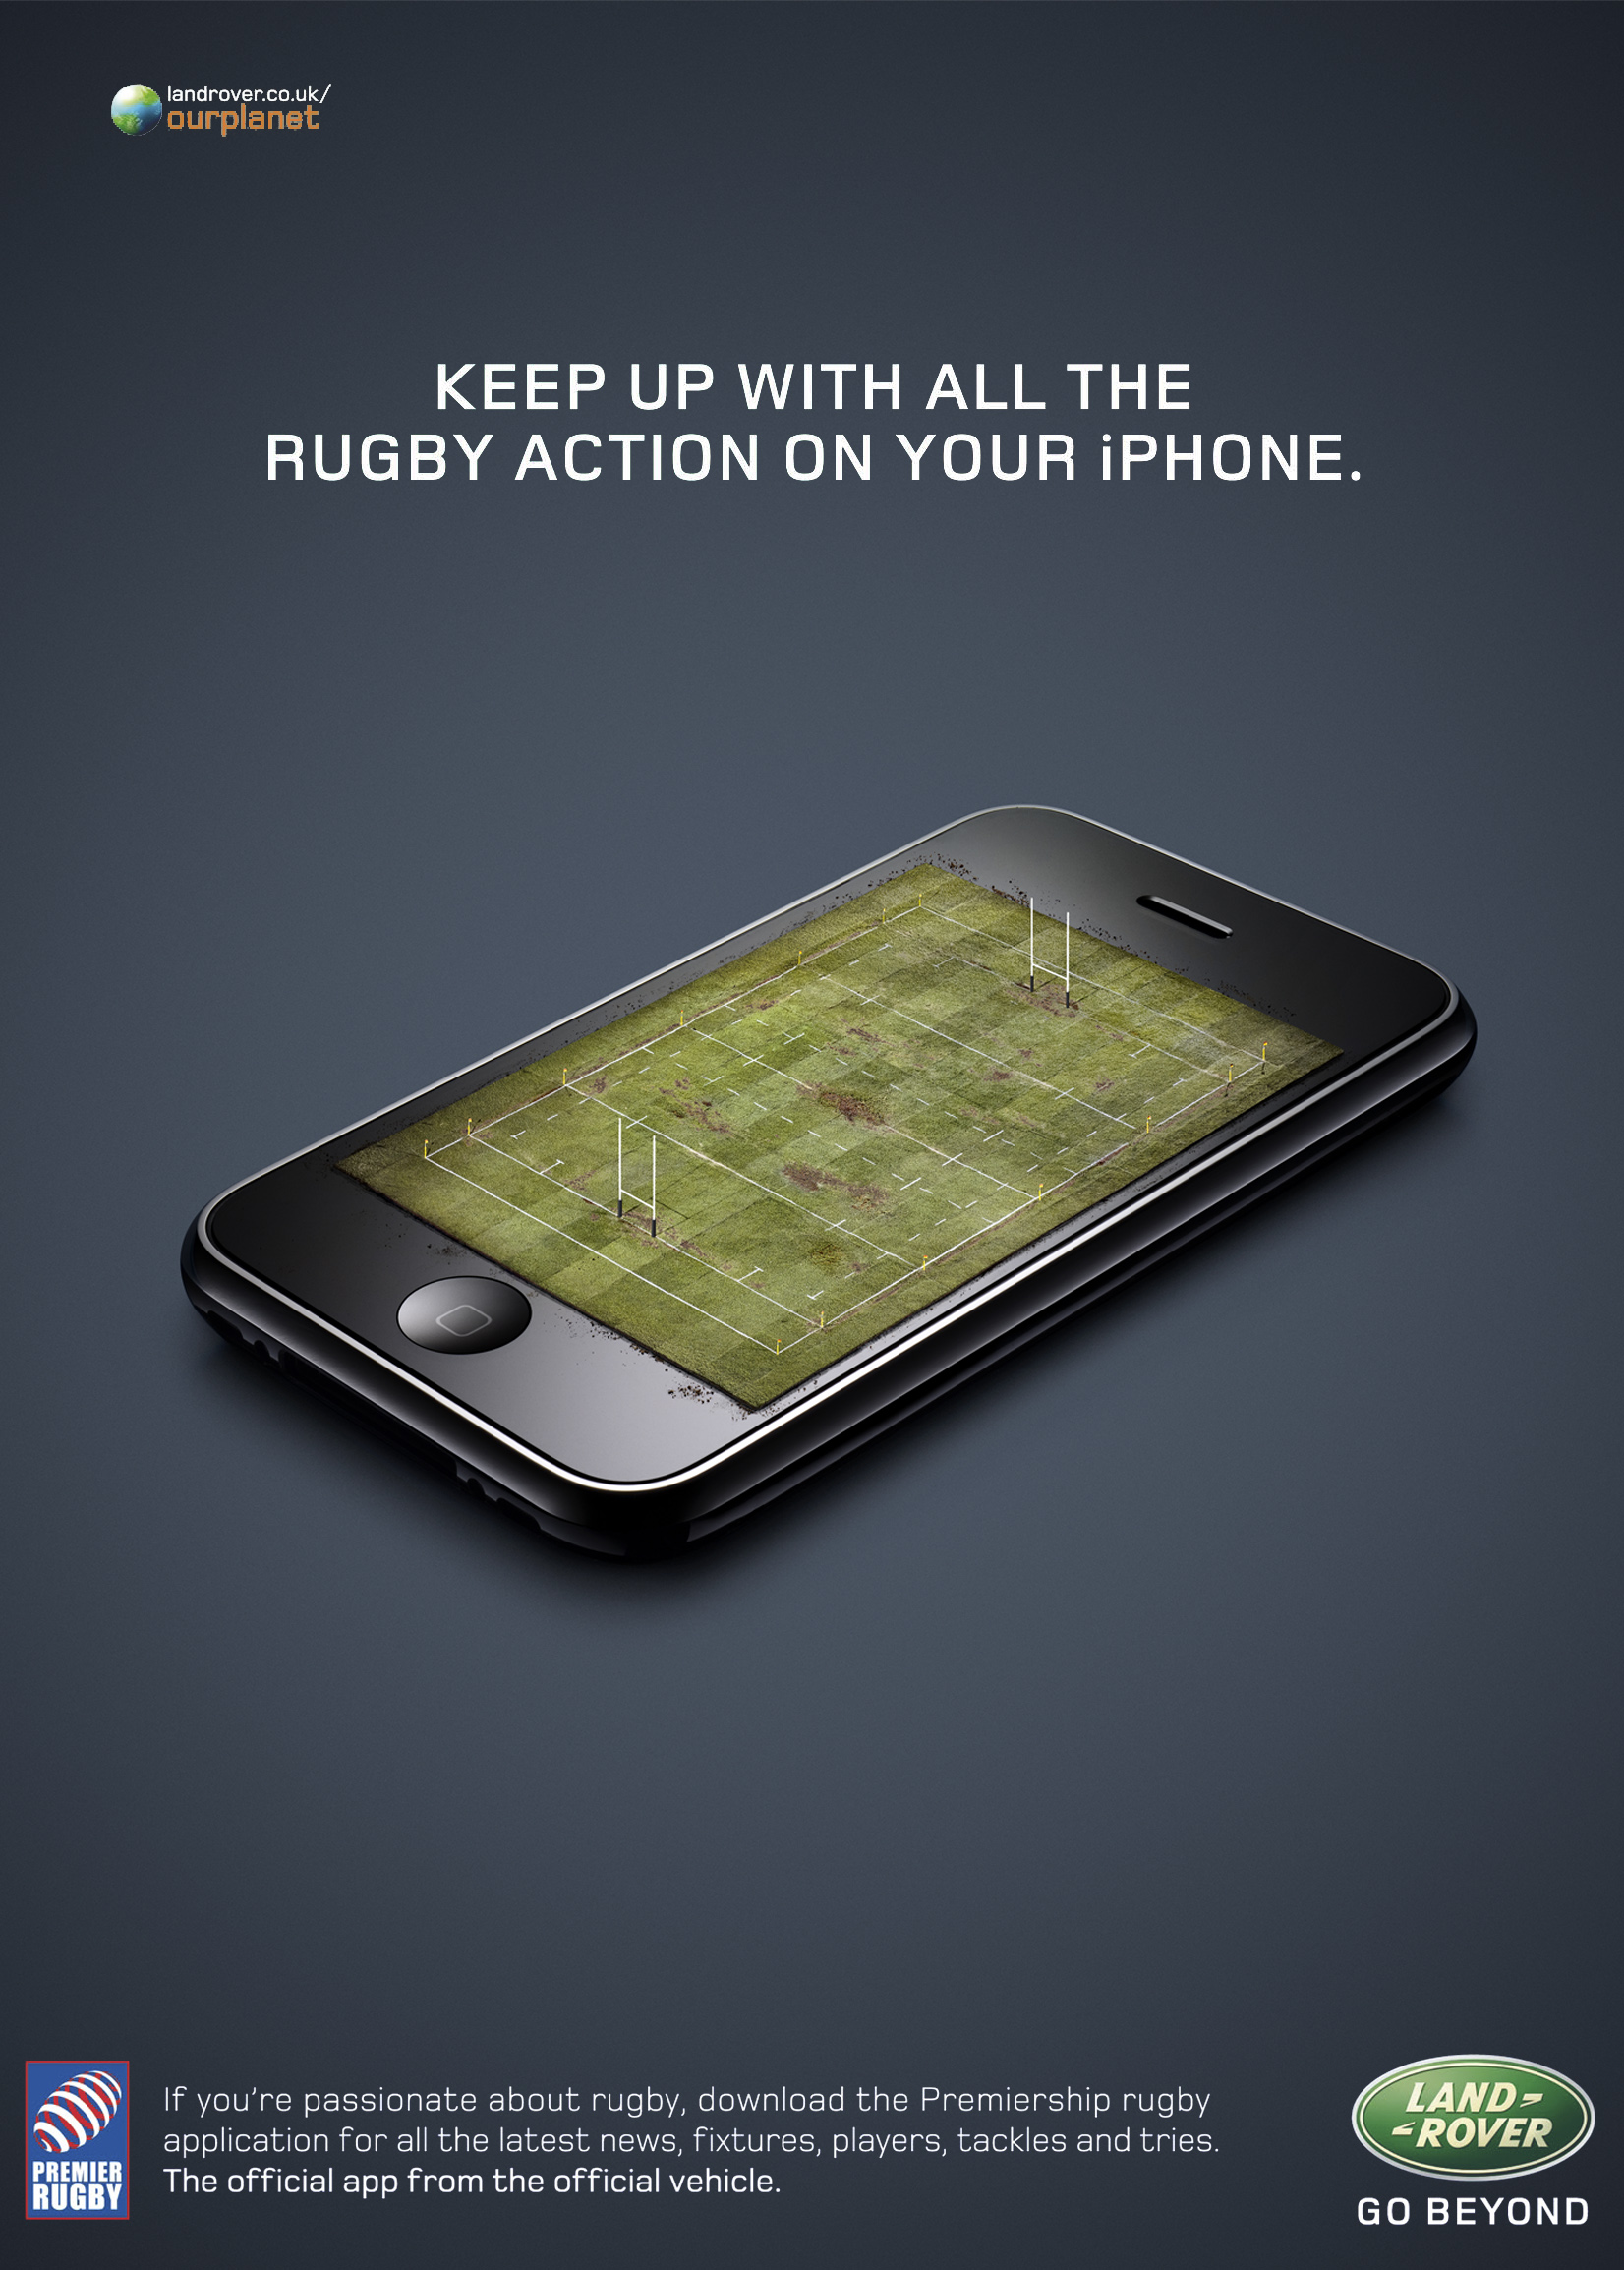 IPhone_Rugby_ad.jpg